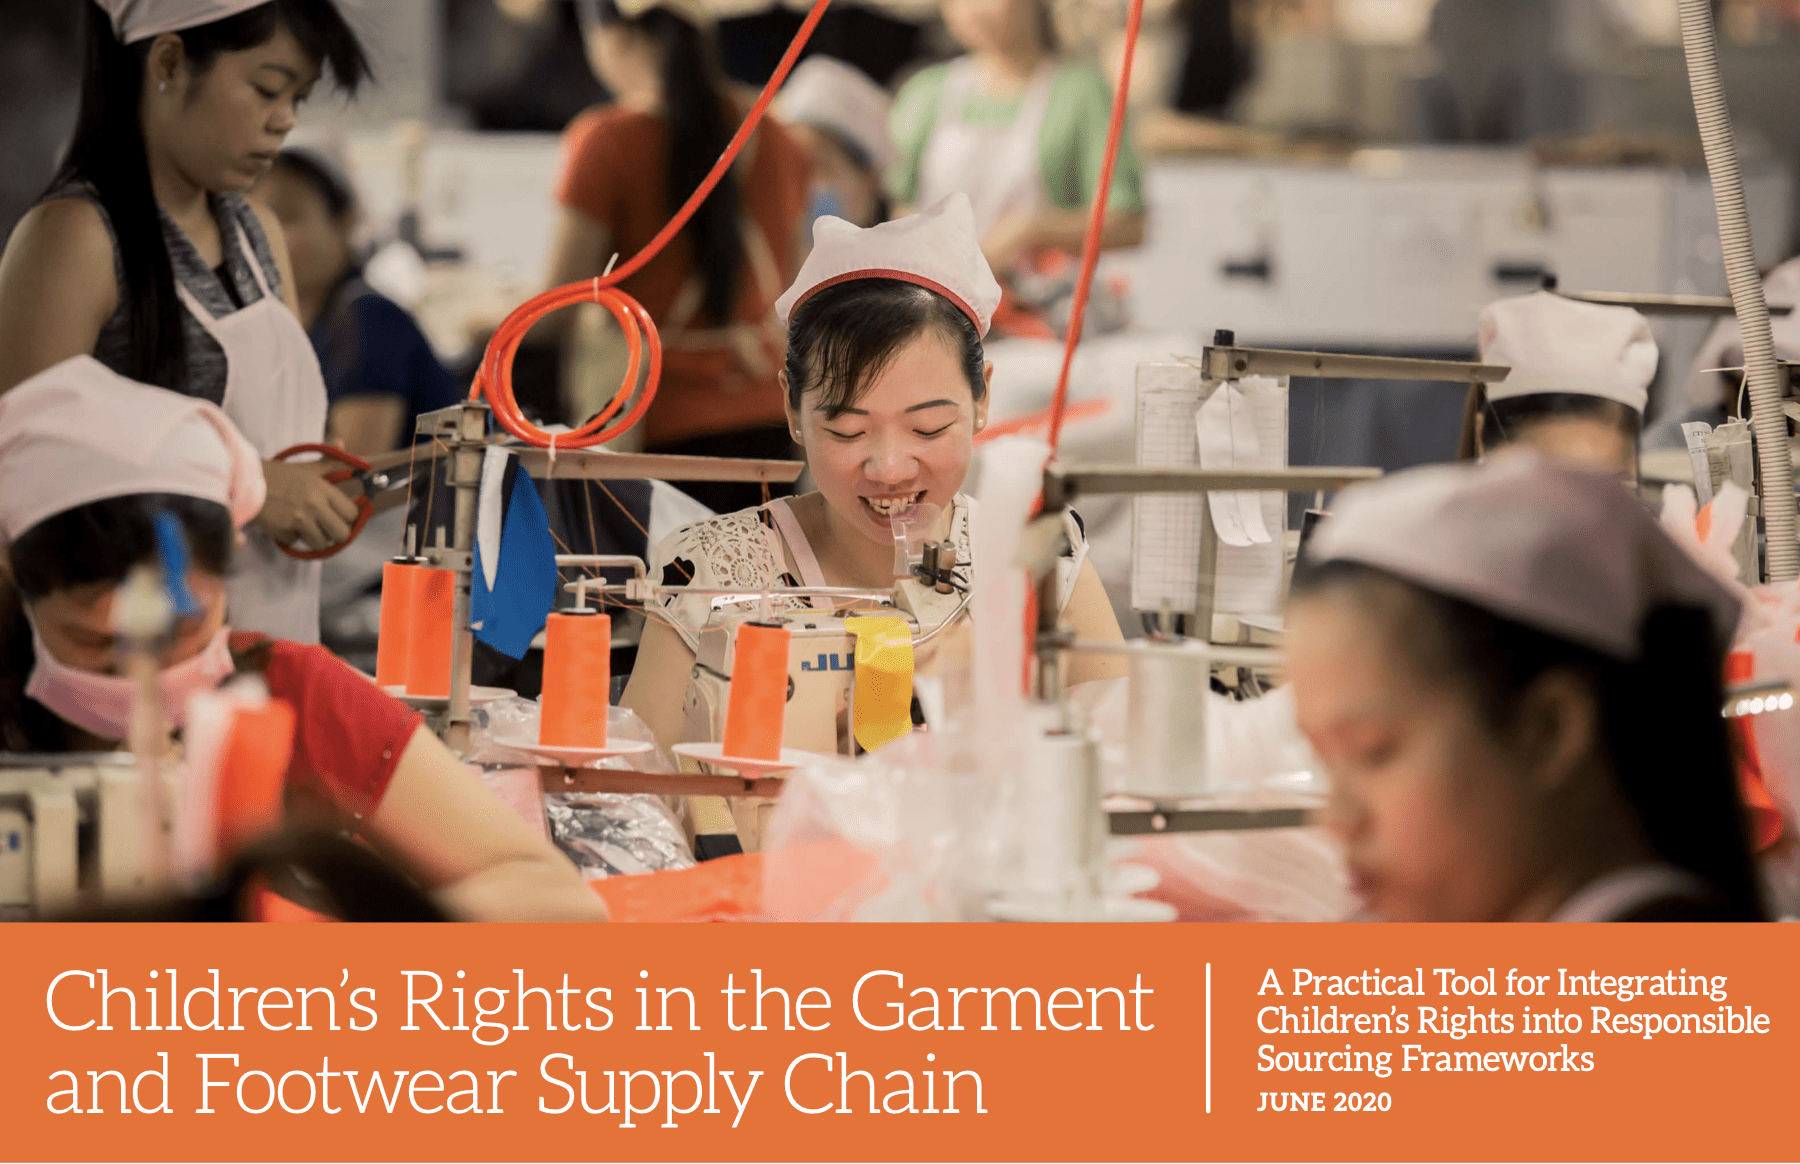 Children's Rights in the Garment and Footwear Supply Chain: A Practical Tool for Integrating Children's Rights into Responsible Sourcing Frameworks